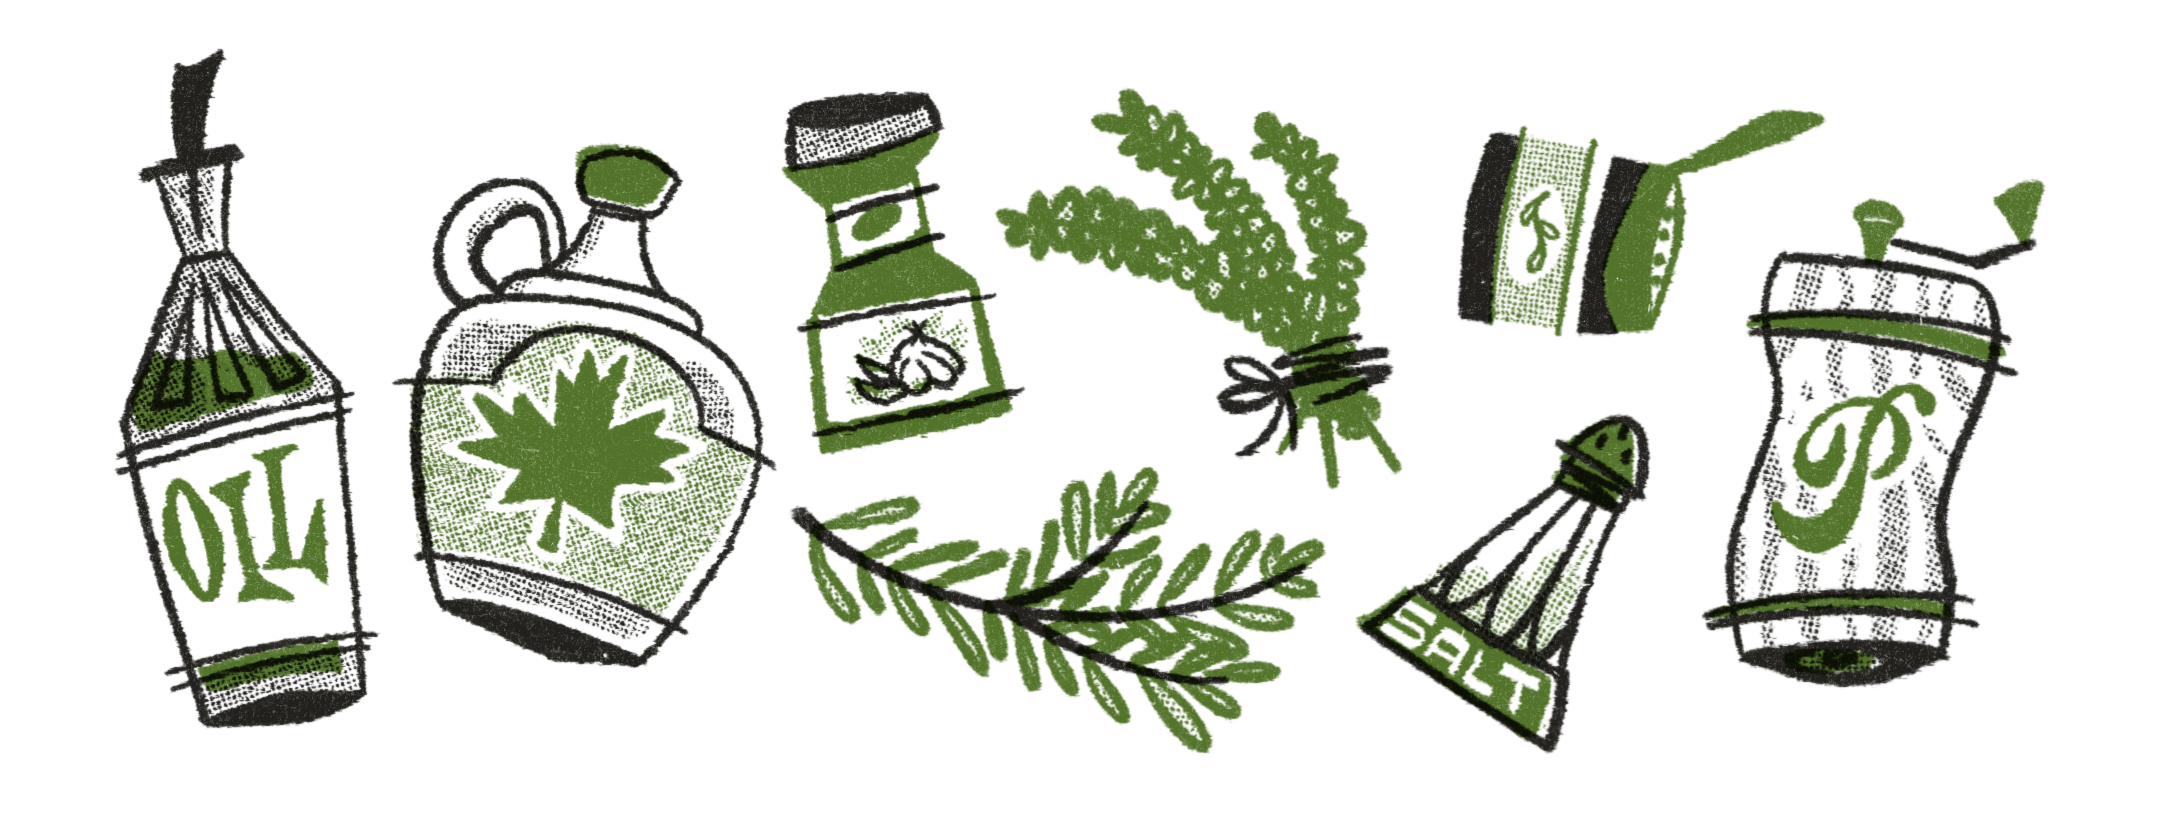 Oils_&_Herbs.png